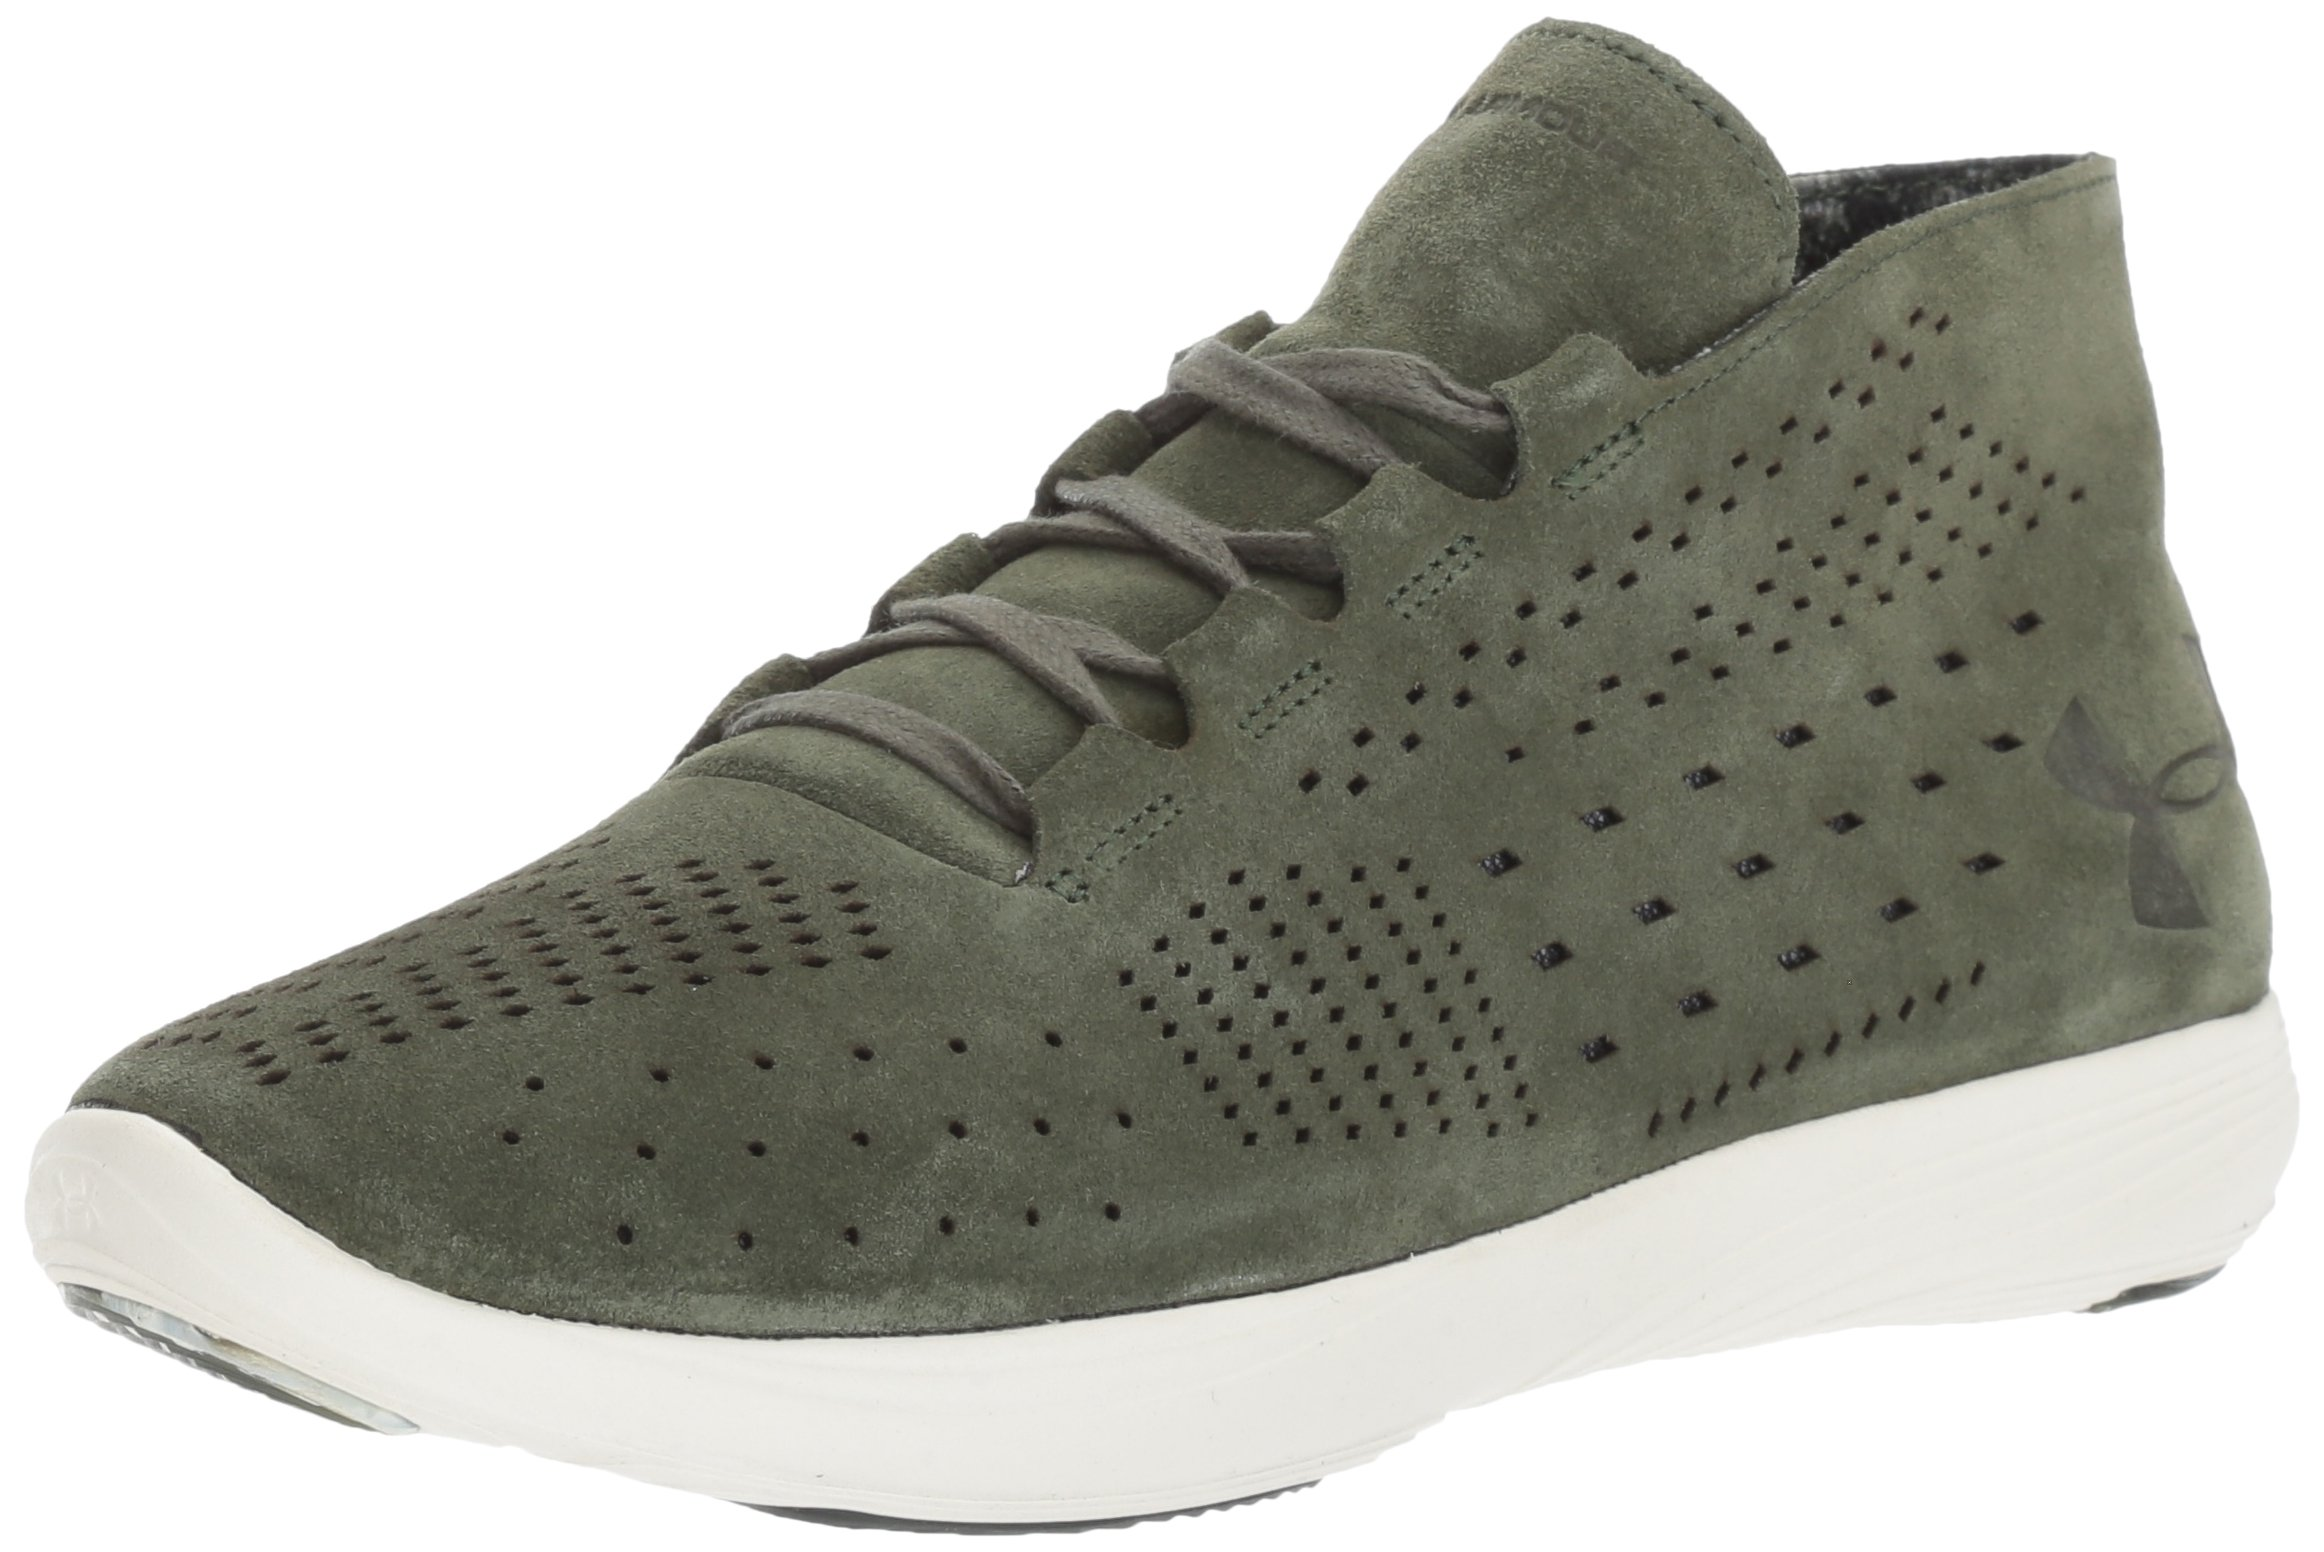 Under Armour Women's Street Precision Mid Lux, Downtown Green/Ivory/Nordic Green, 11 B(M) US